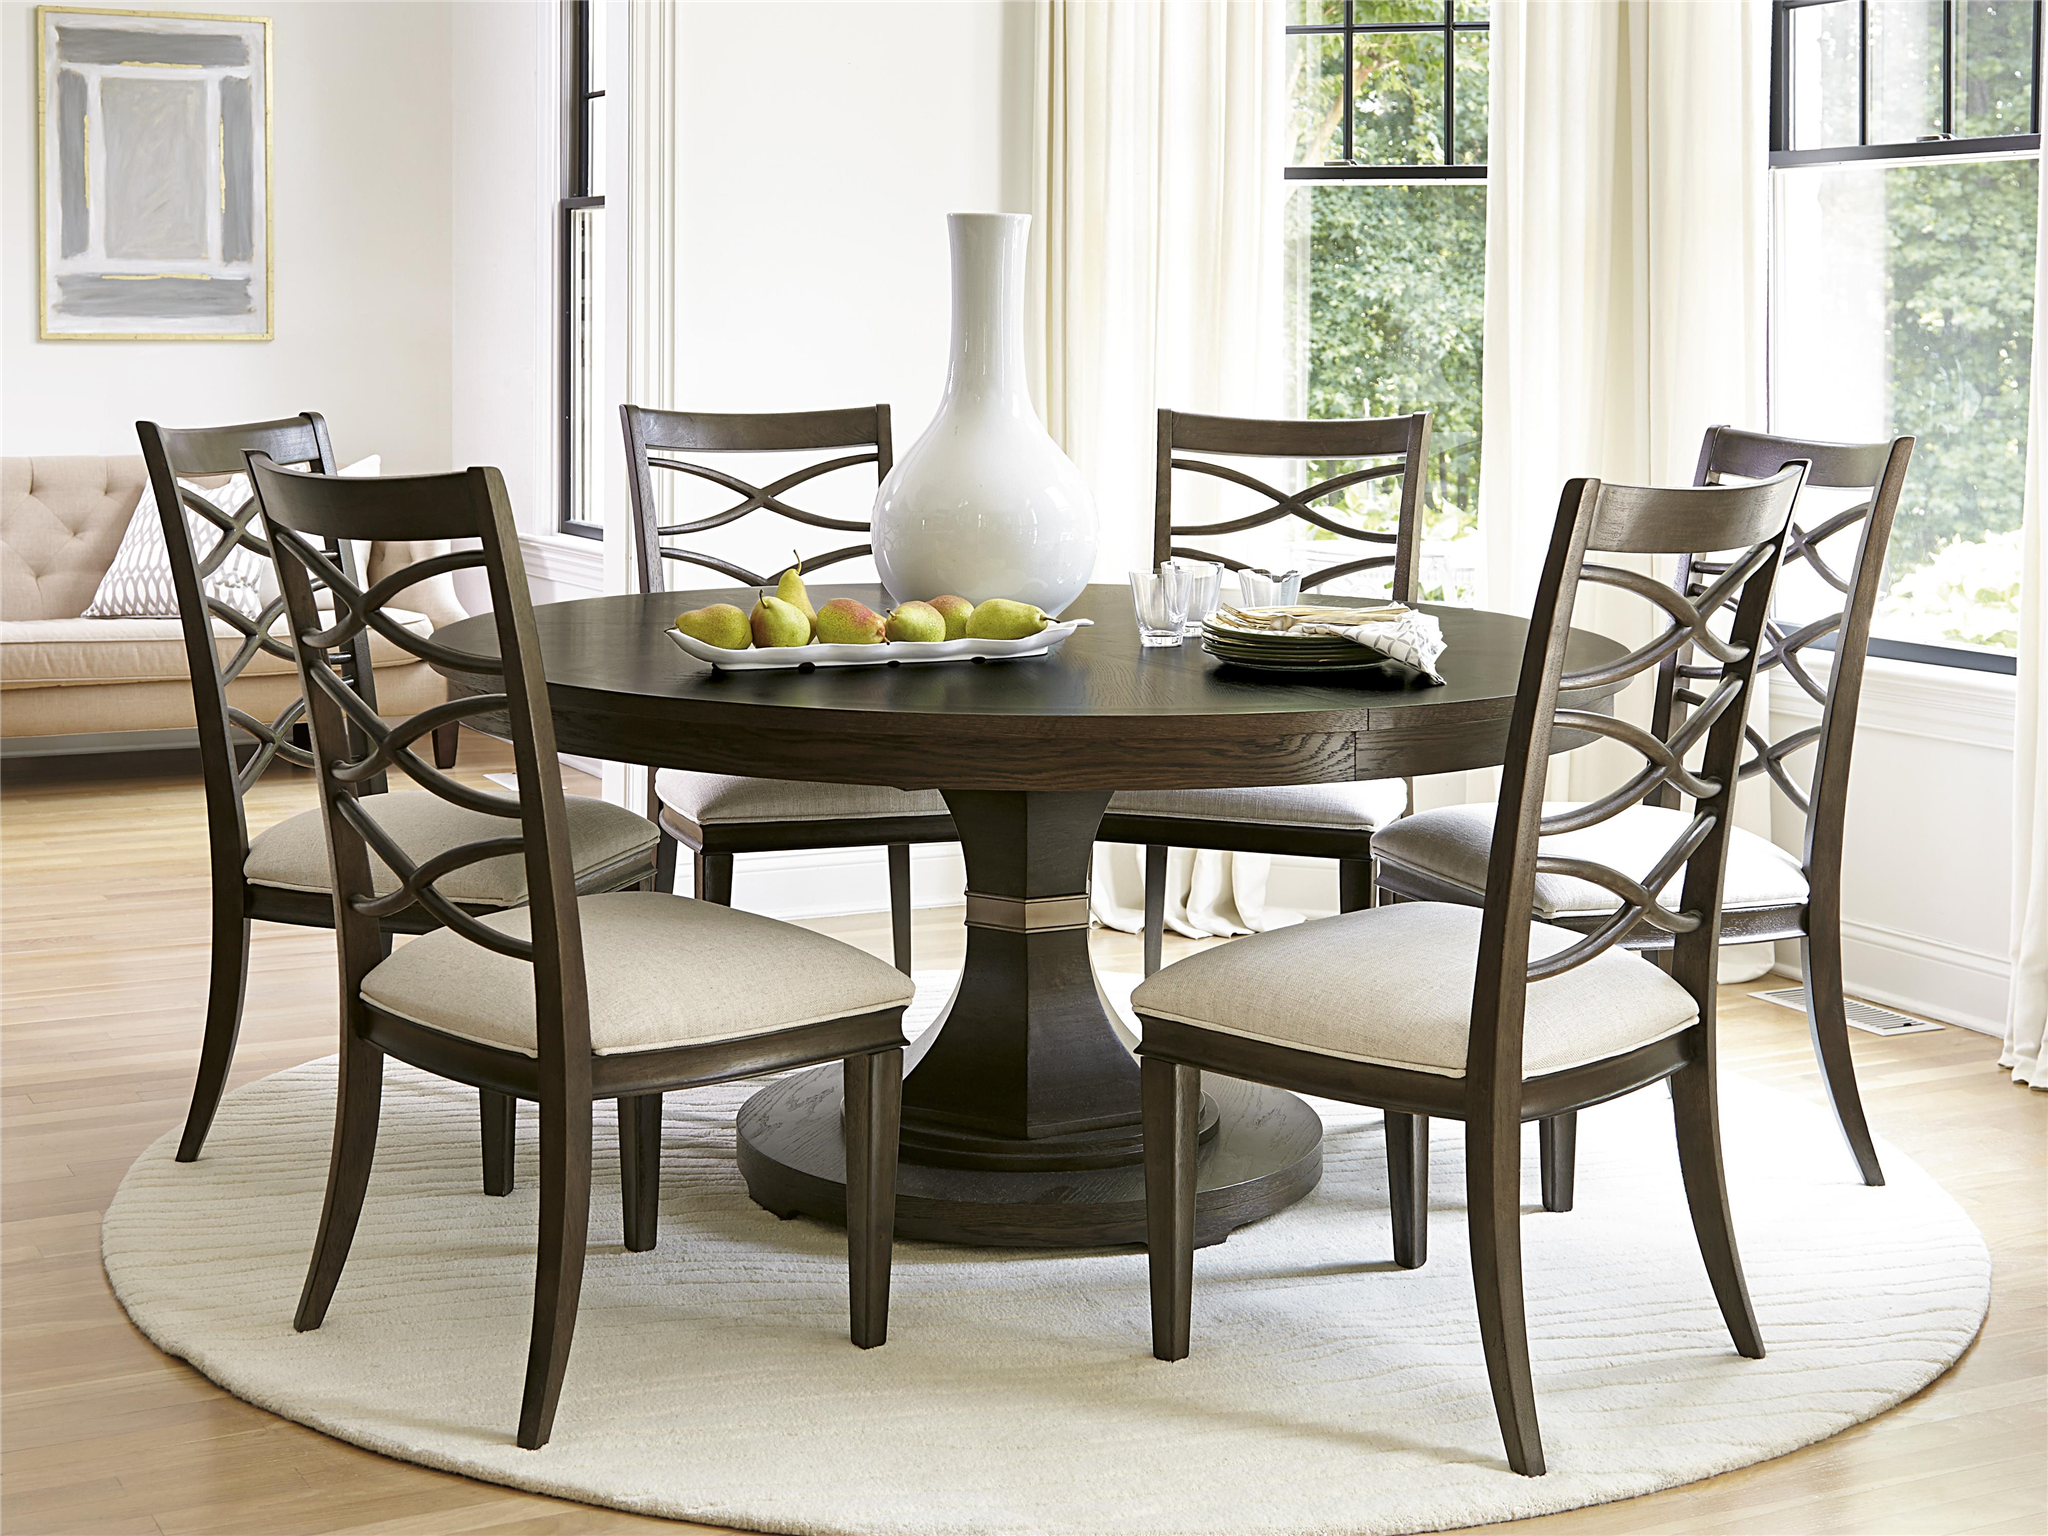 Round dining room sets - Round Dining Room Sets 26